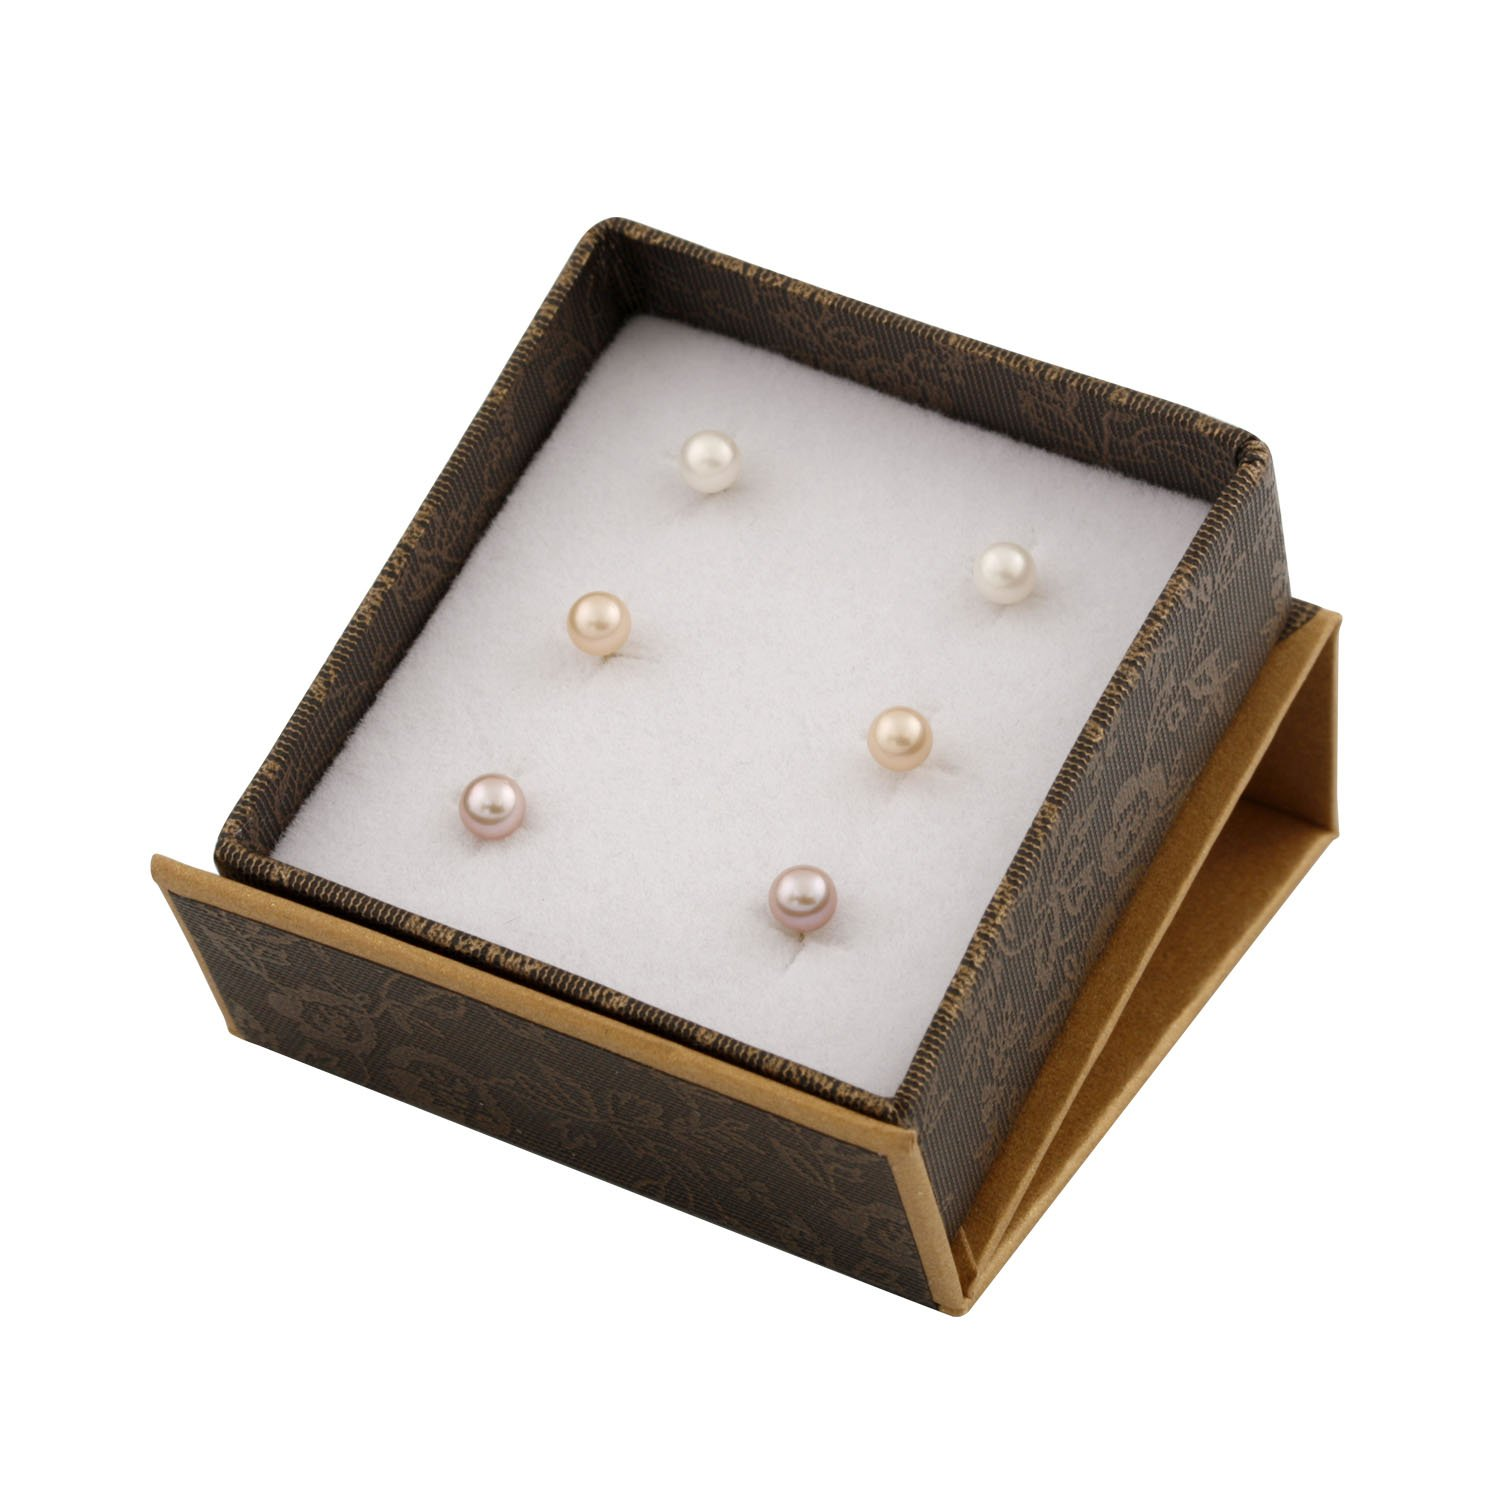 Set of 3 14k Yellow Gold Stud Ball Earrings 4-4.5mm Freshwater Cultured Pearl 14K YG Silicone Push Backs